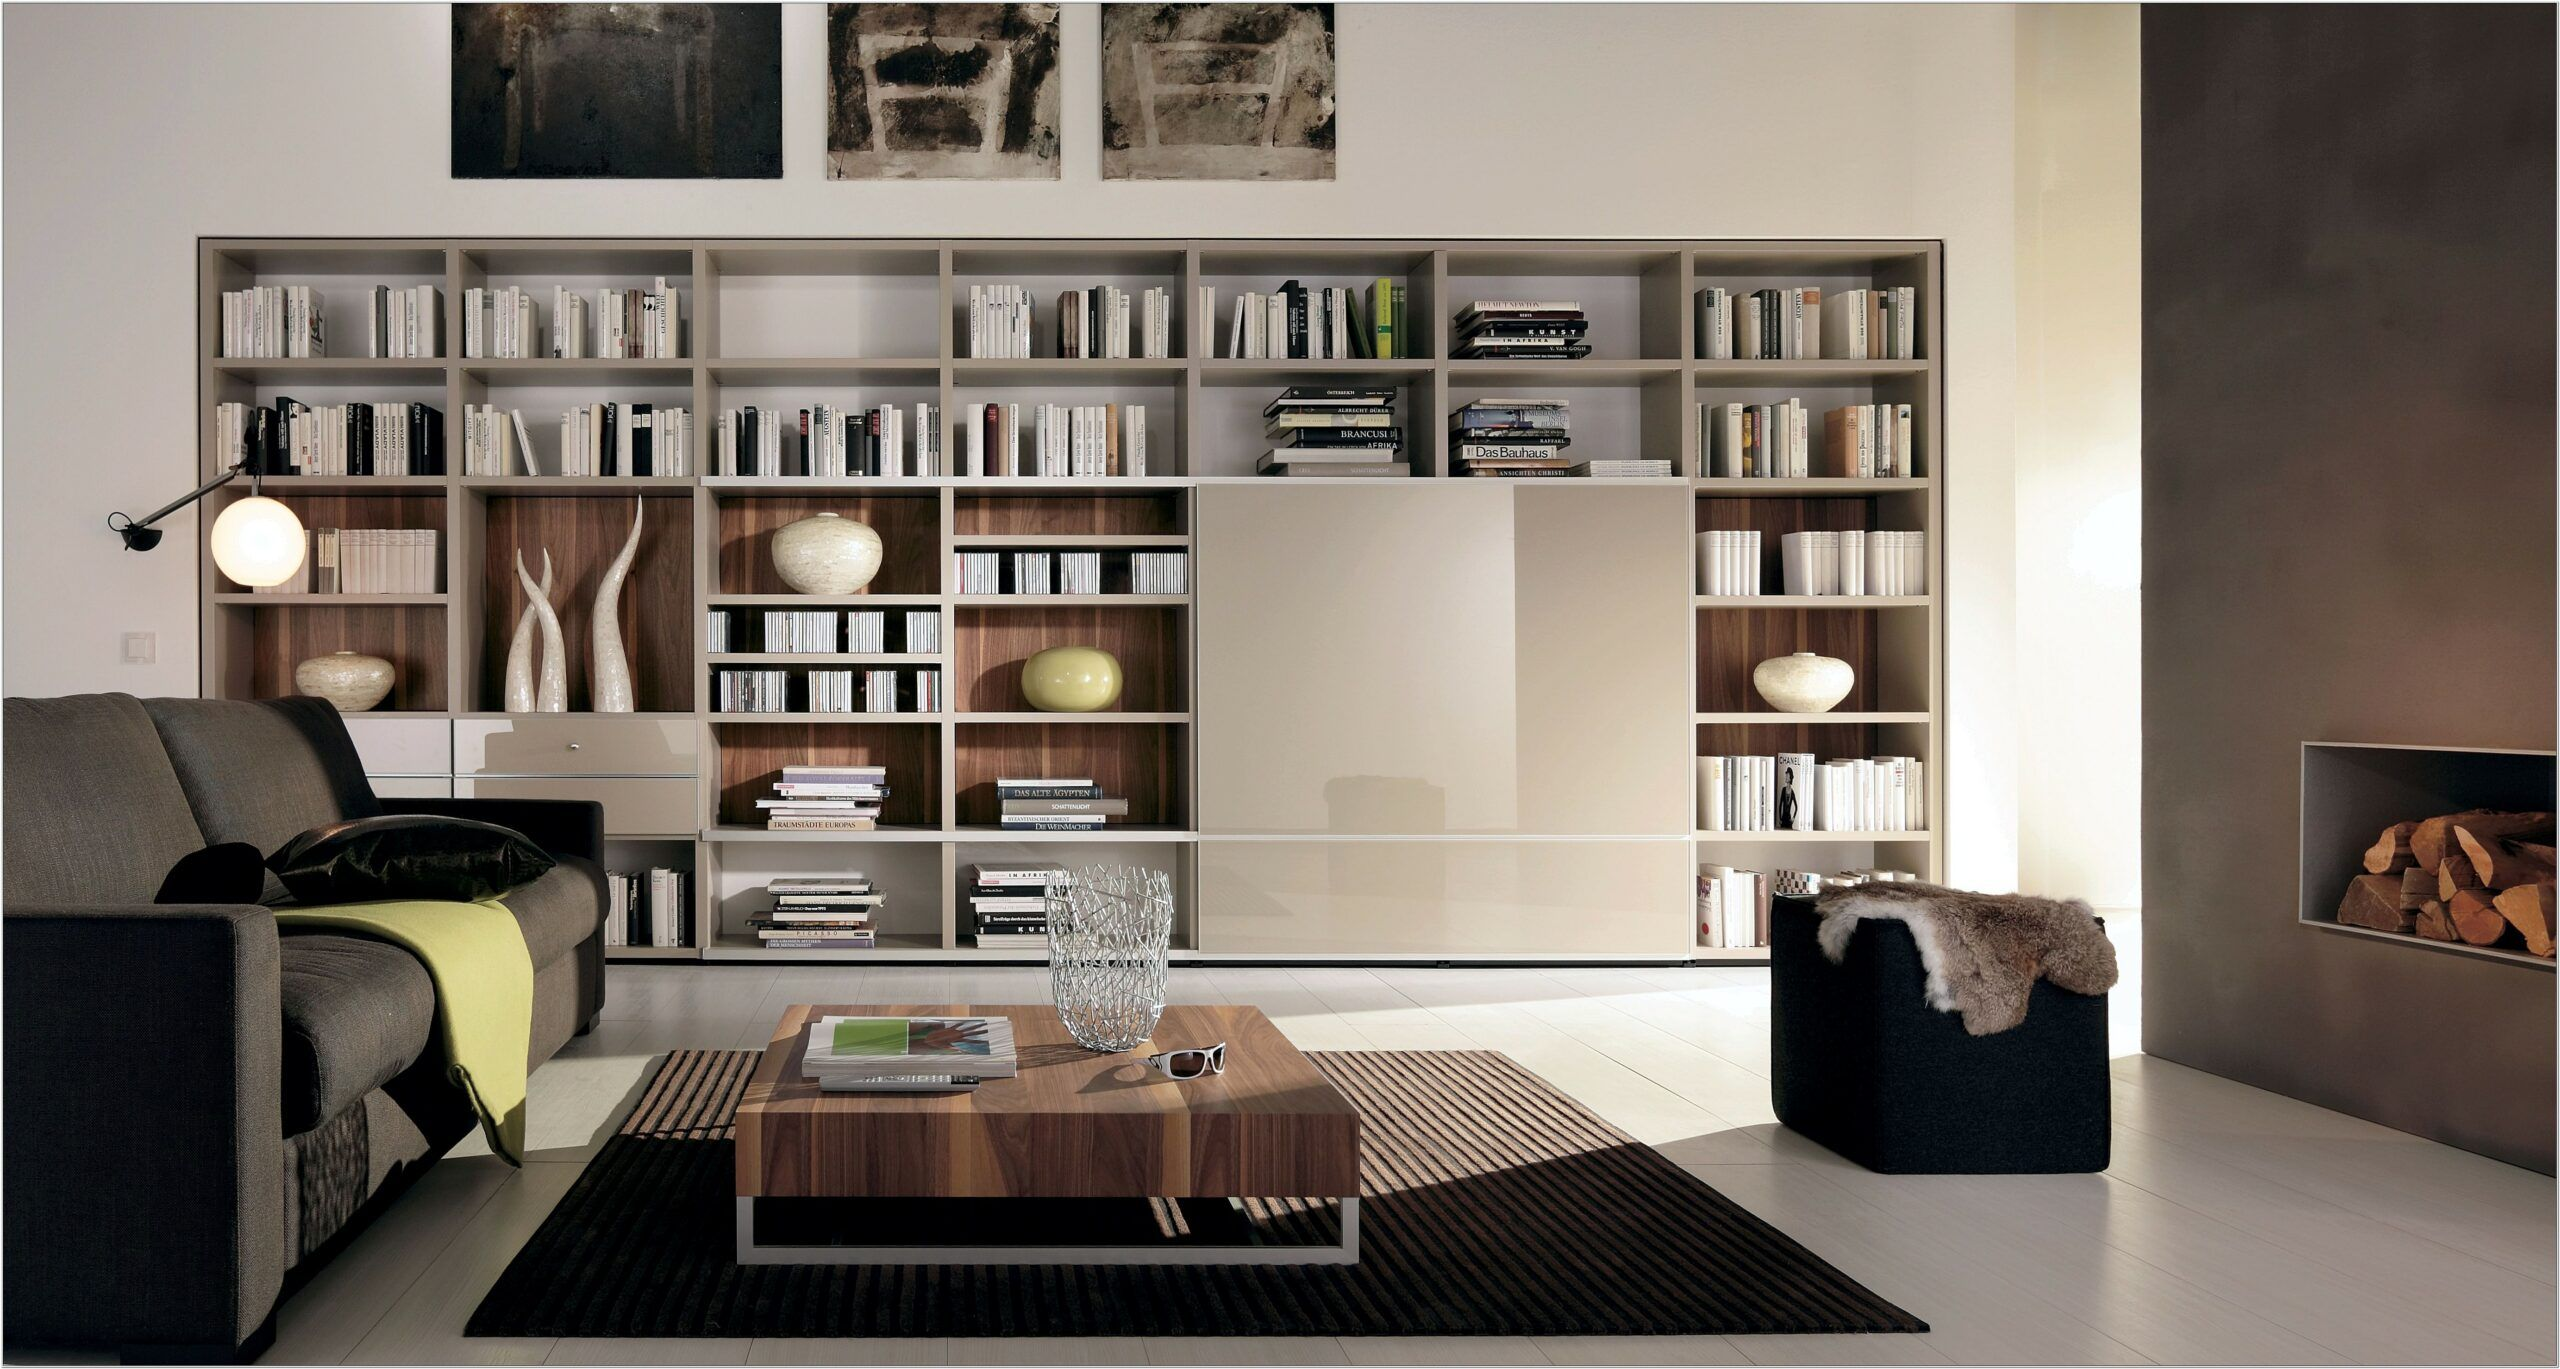 Book Storage Ideas For Living Room In 2020 Bookshelves In Living Room Living Room Shelves Home Library Design